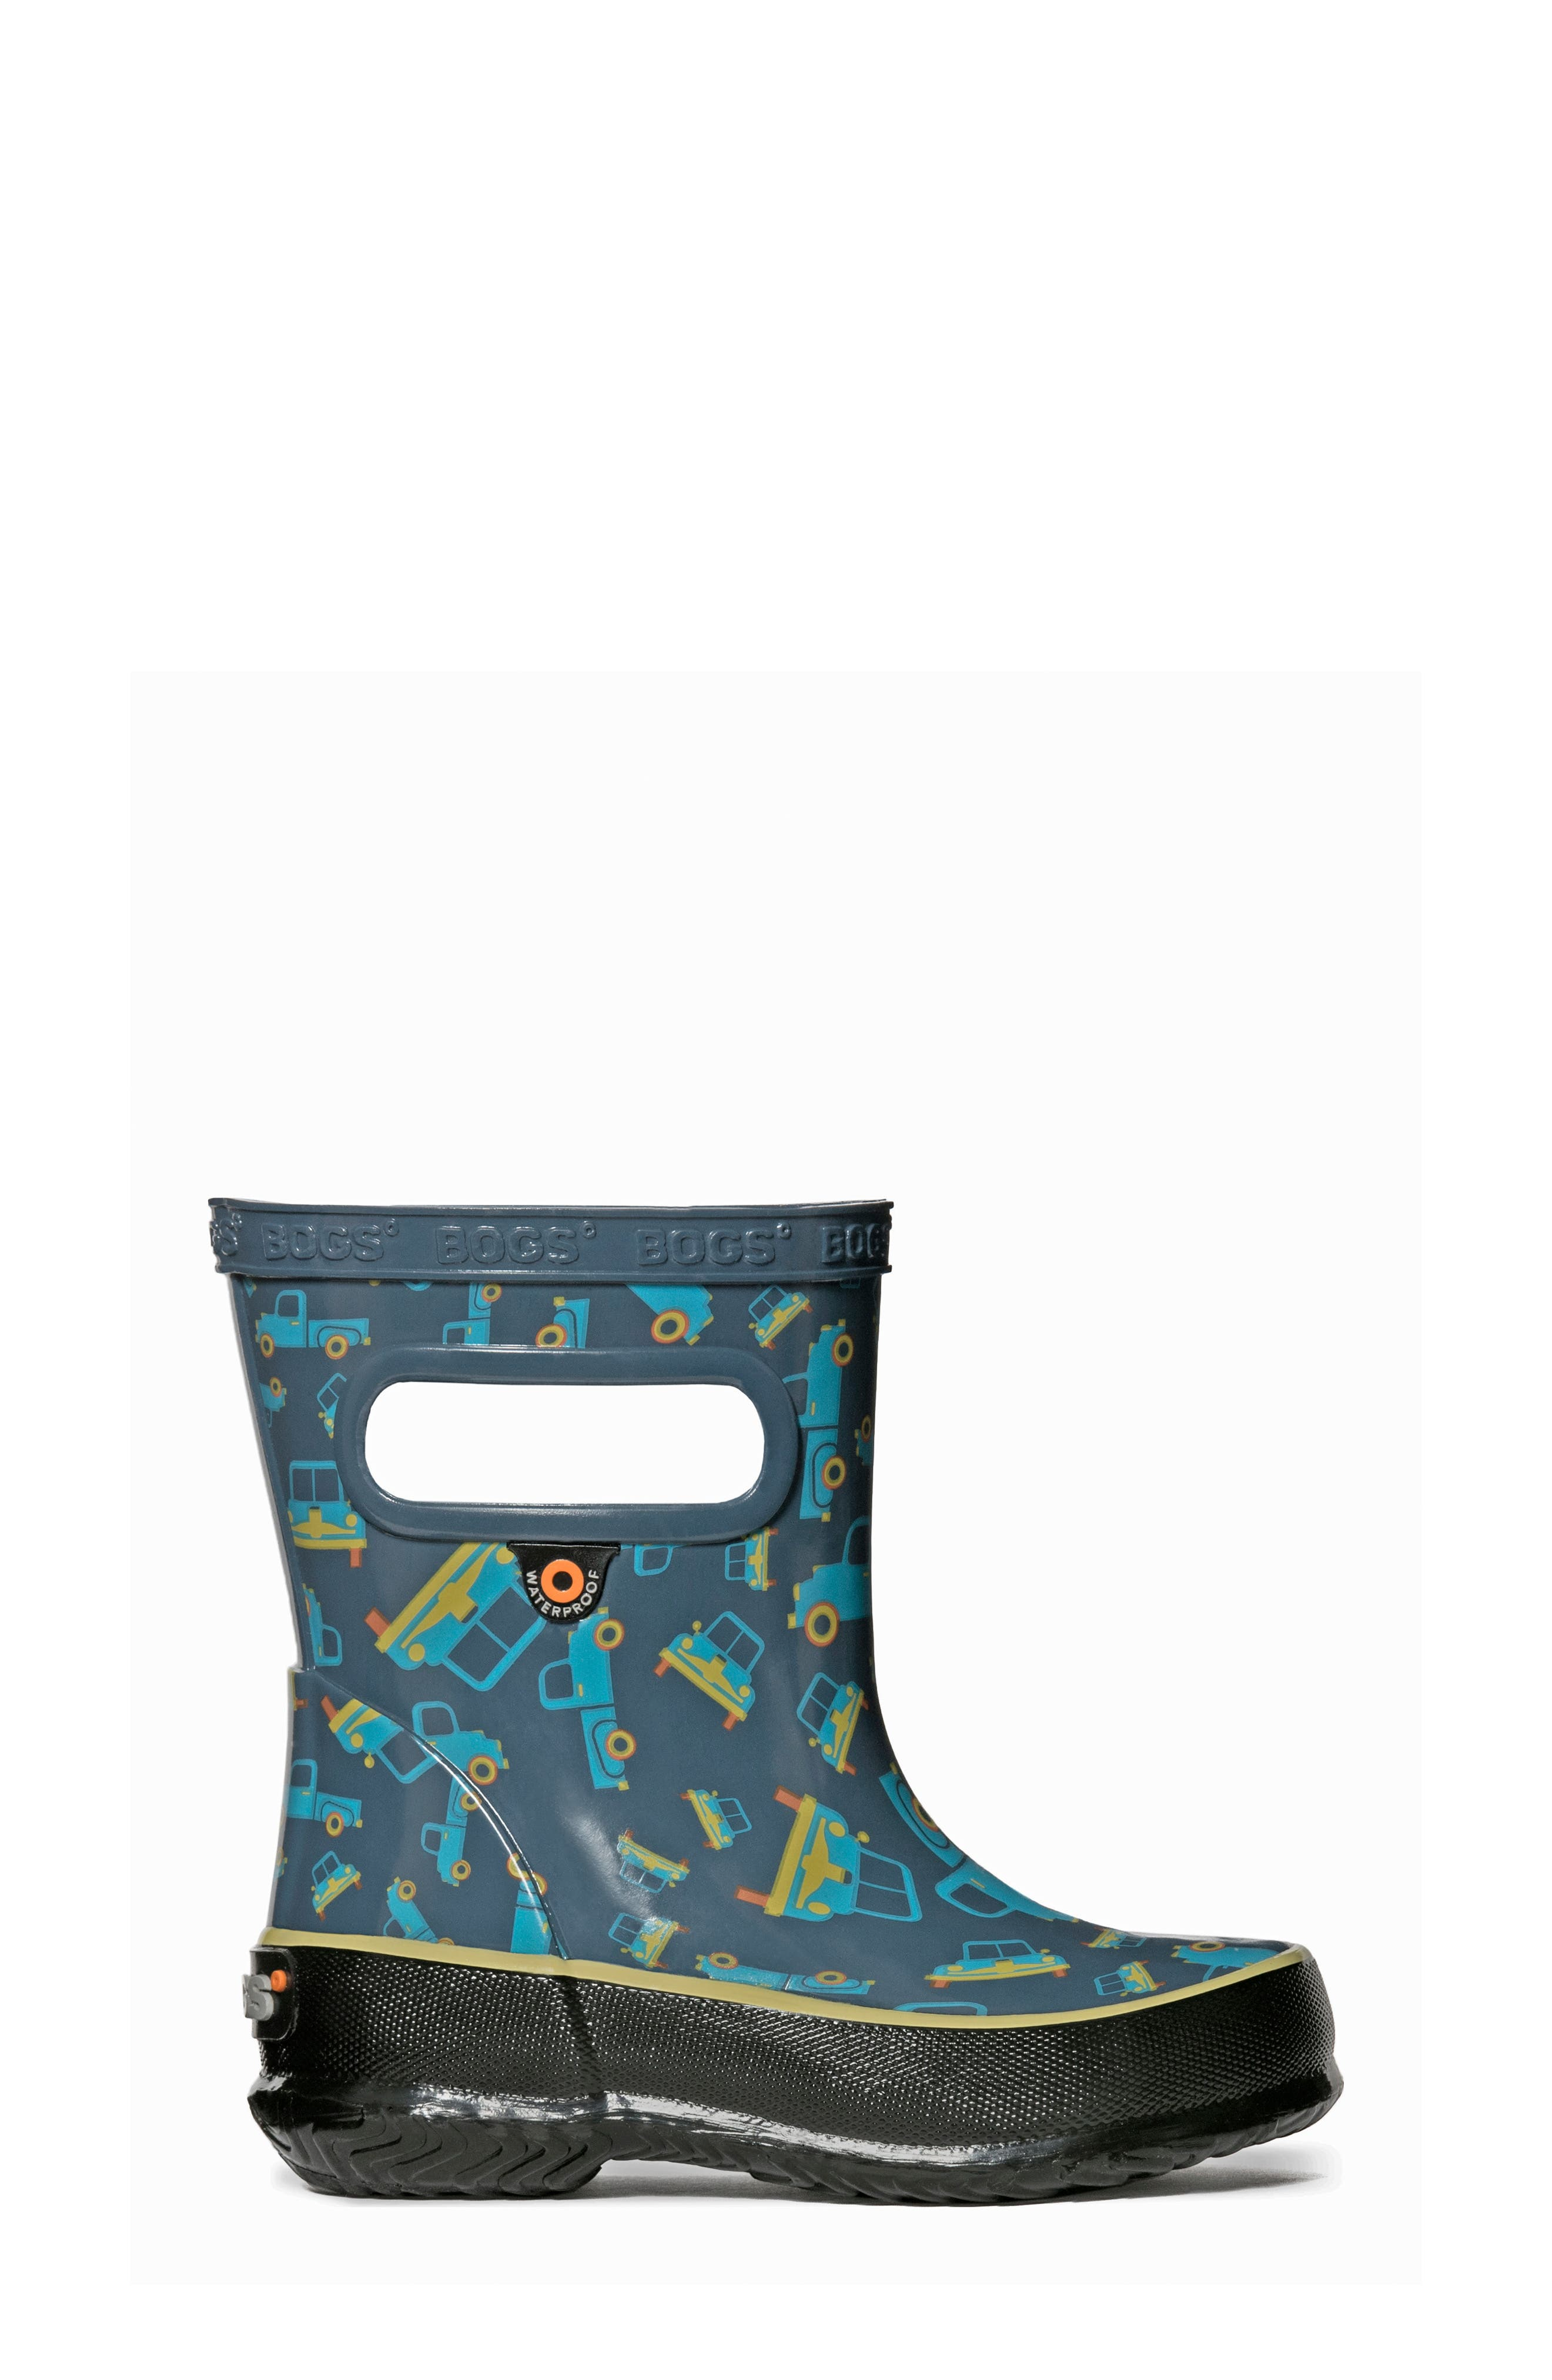 BOGS, Skipper Truck Print Rubber Rain Boot, Alternate thumbnail 8, color, 460